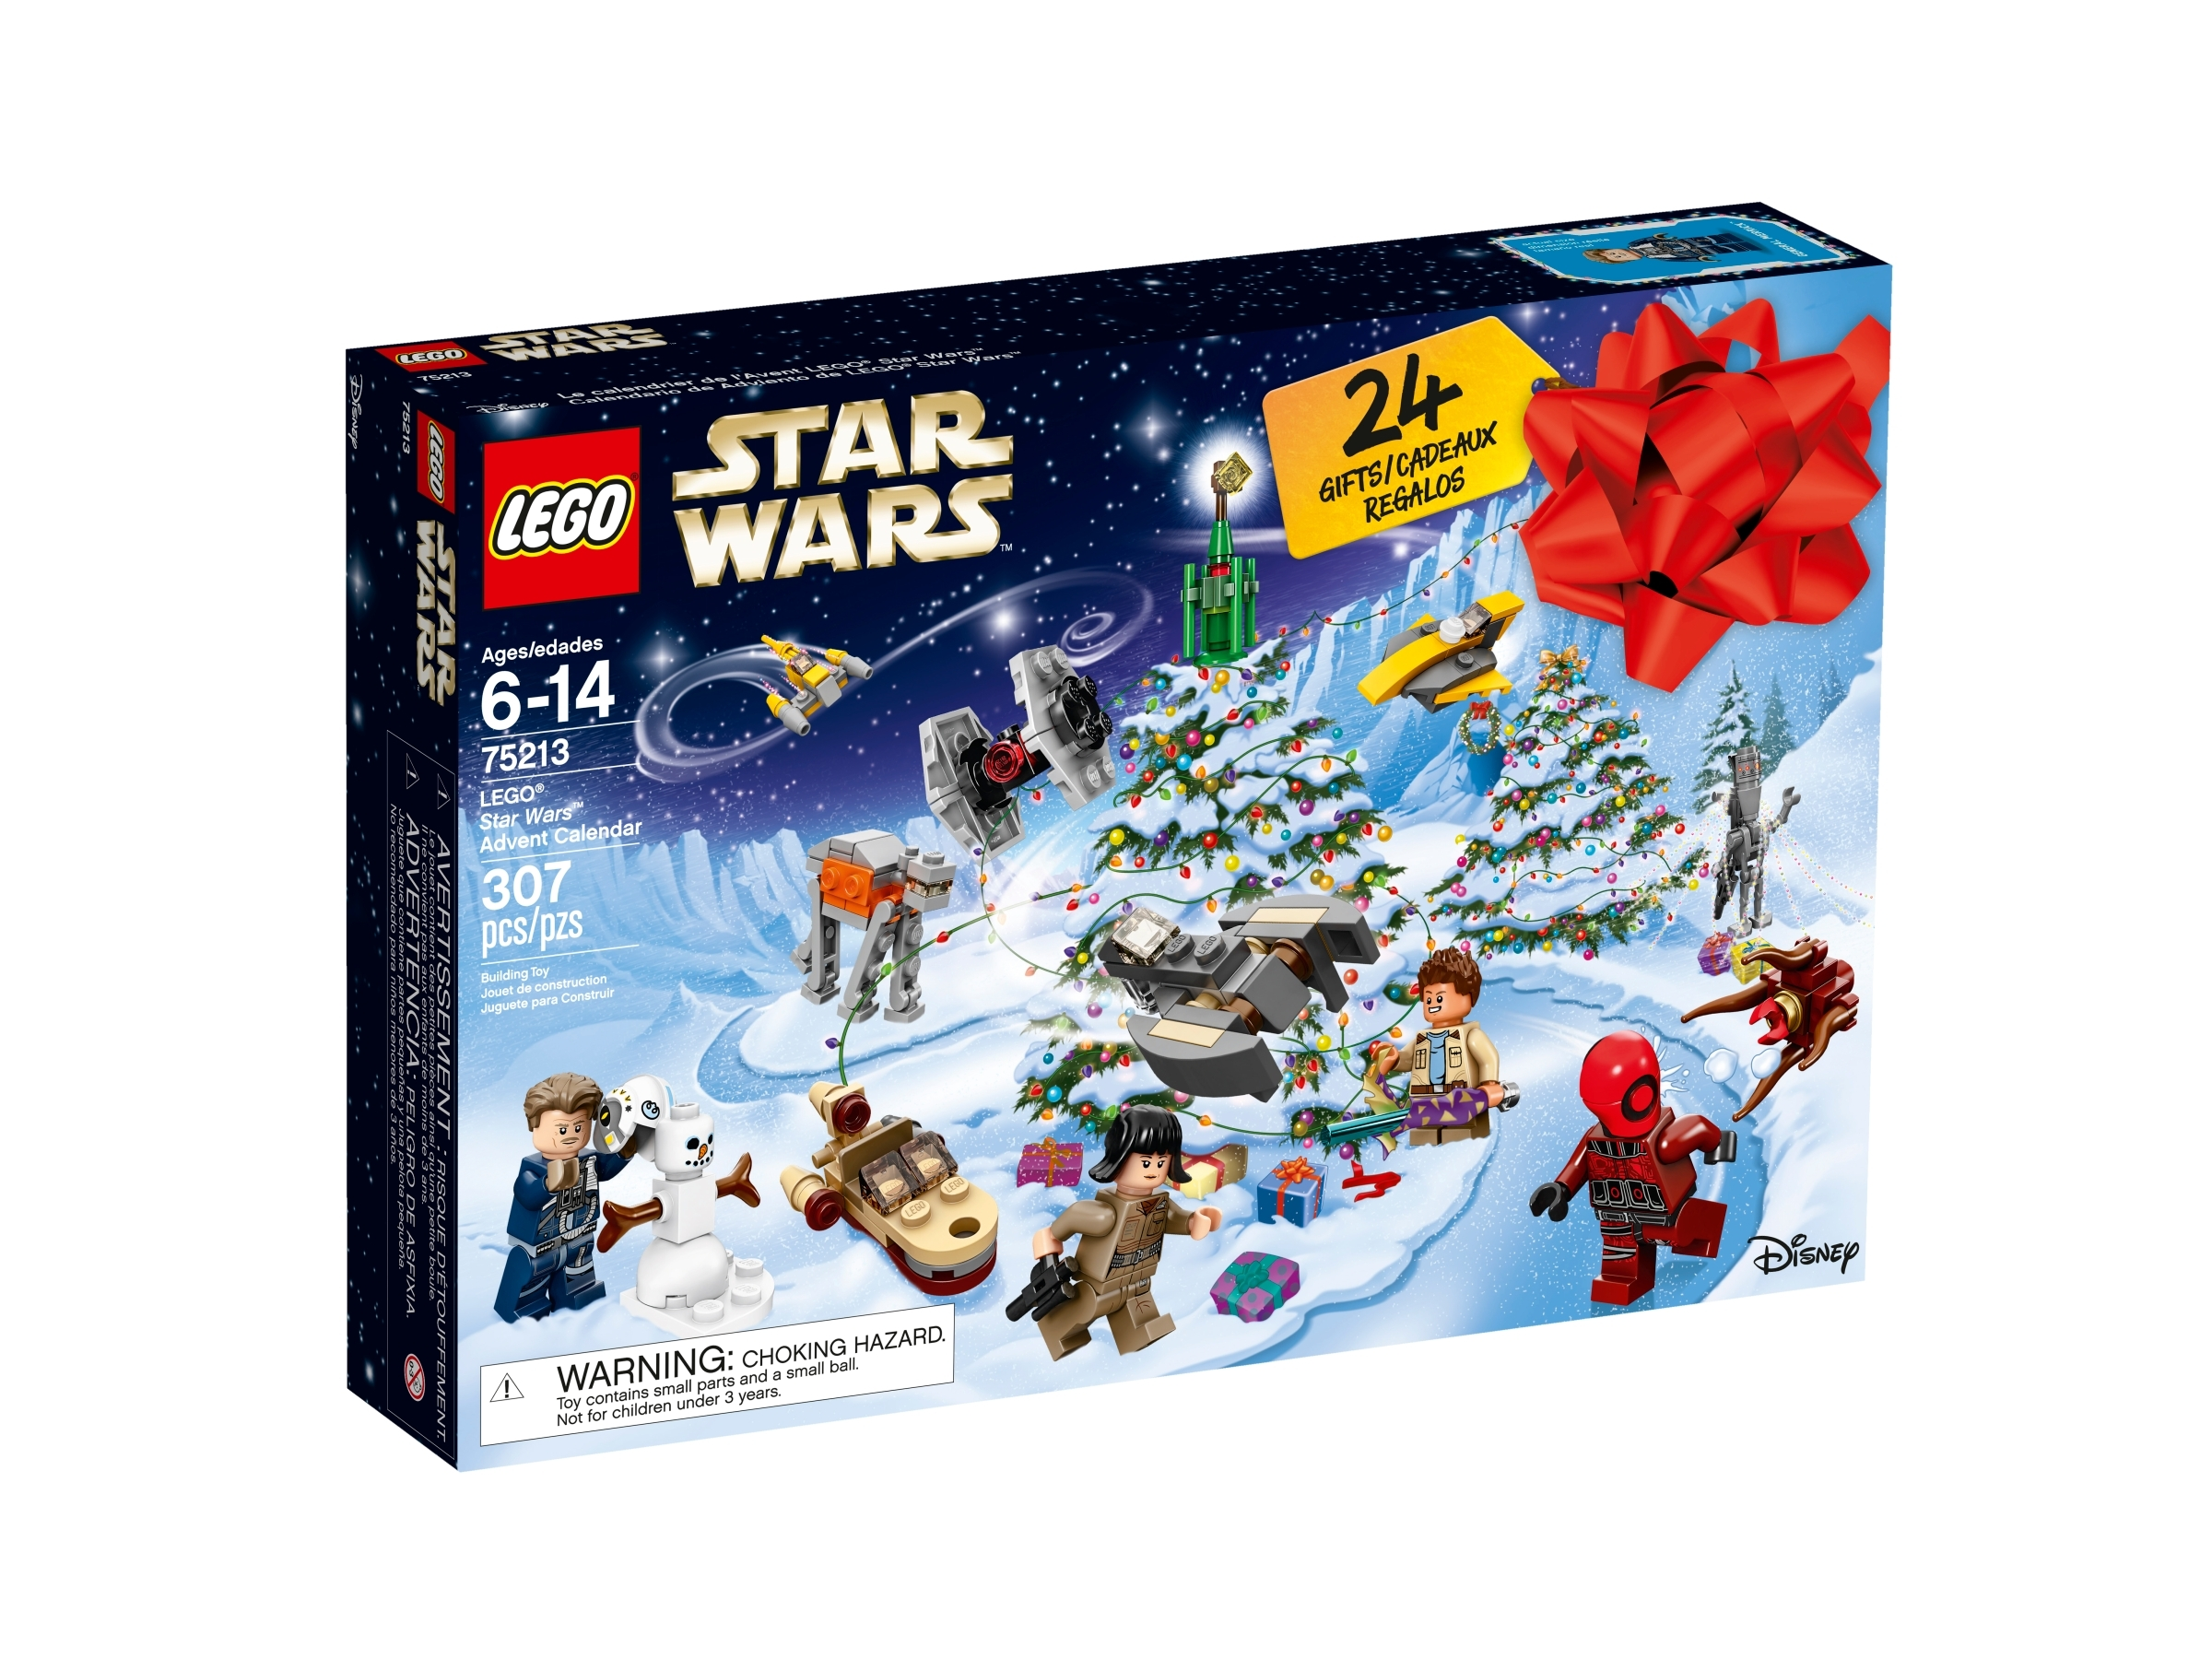 Lego Star Wars Advent Calendar 75213 Star Wars Buy Online At The Official Lego Shop Us